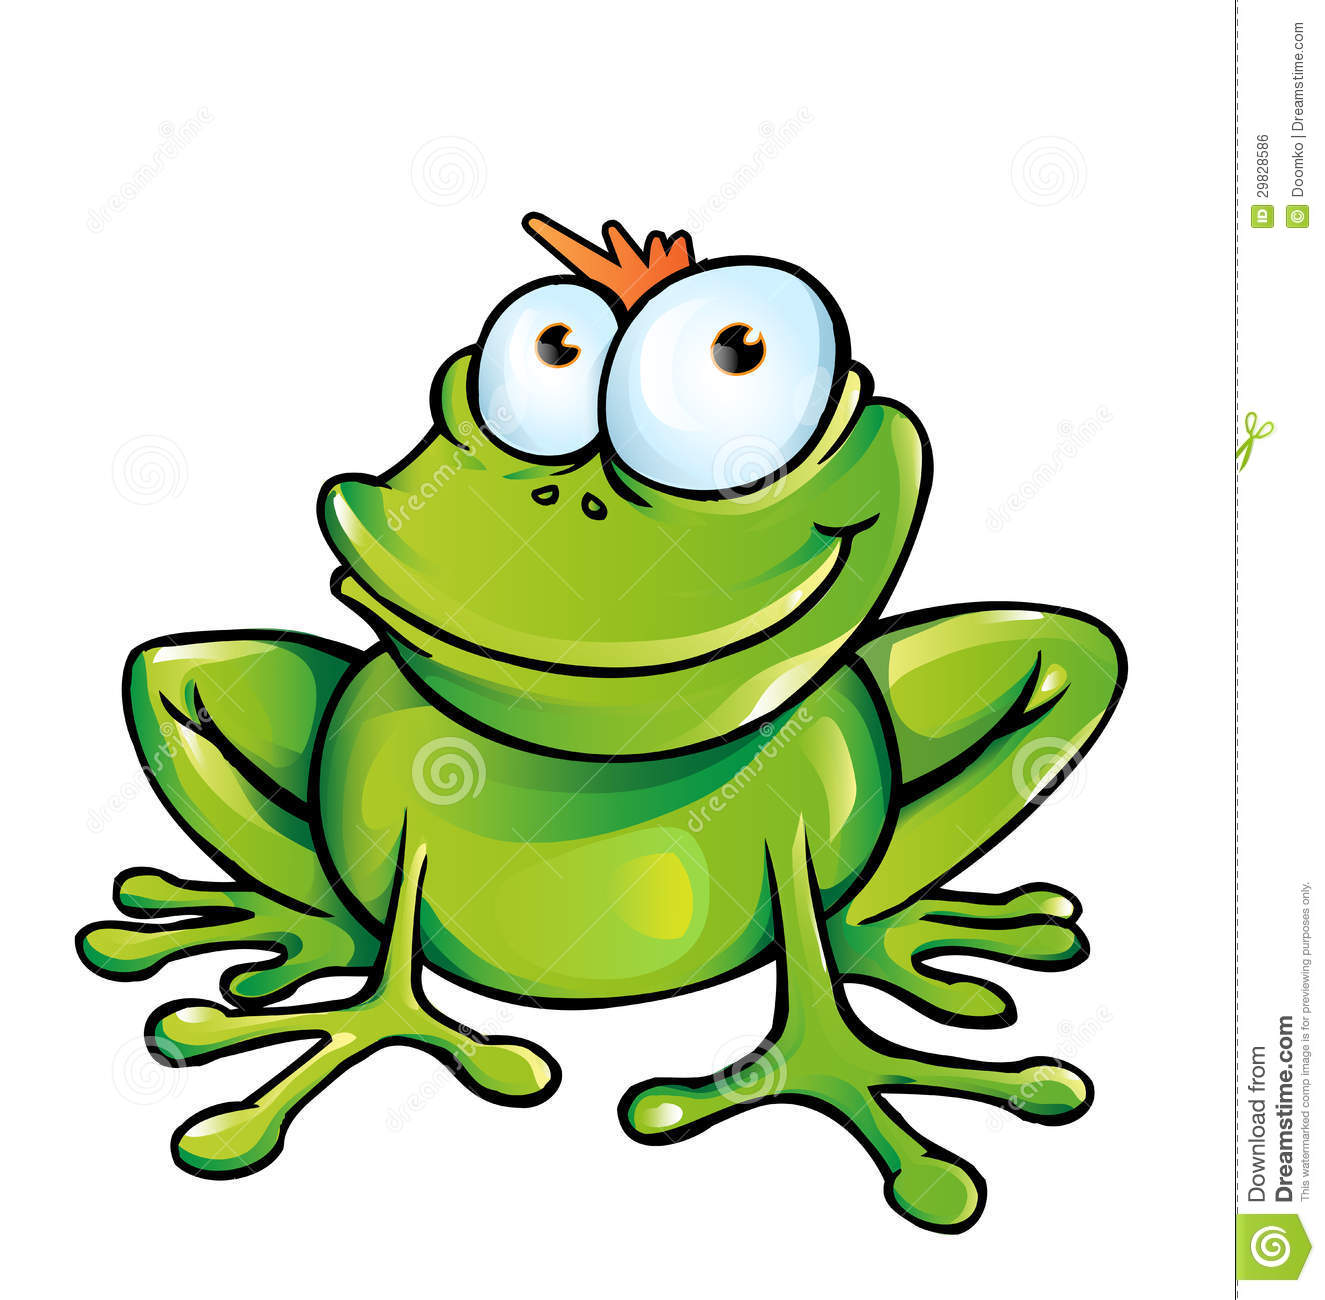 Cartoon frog - photo#25